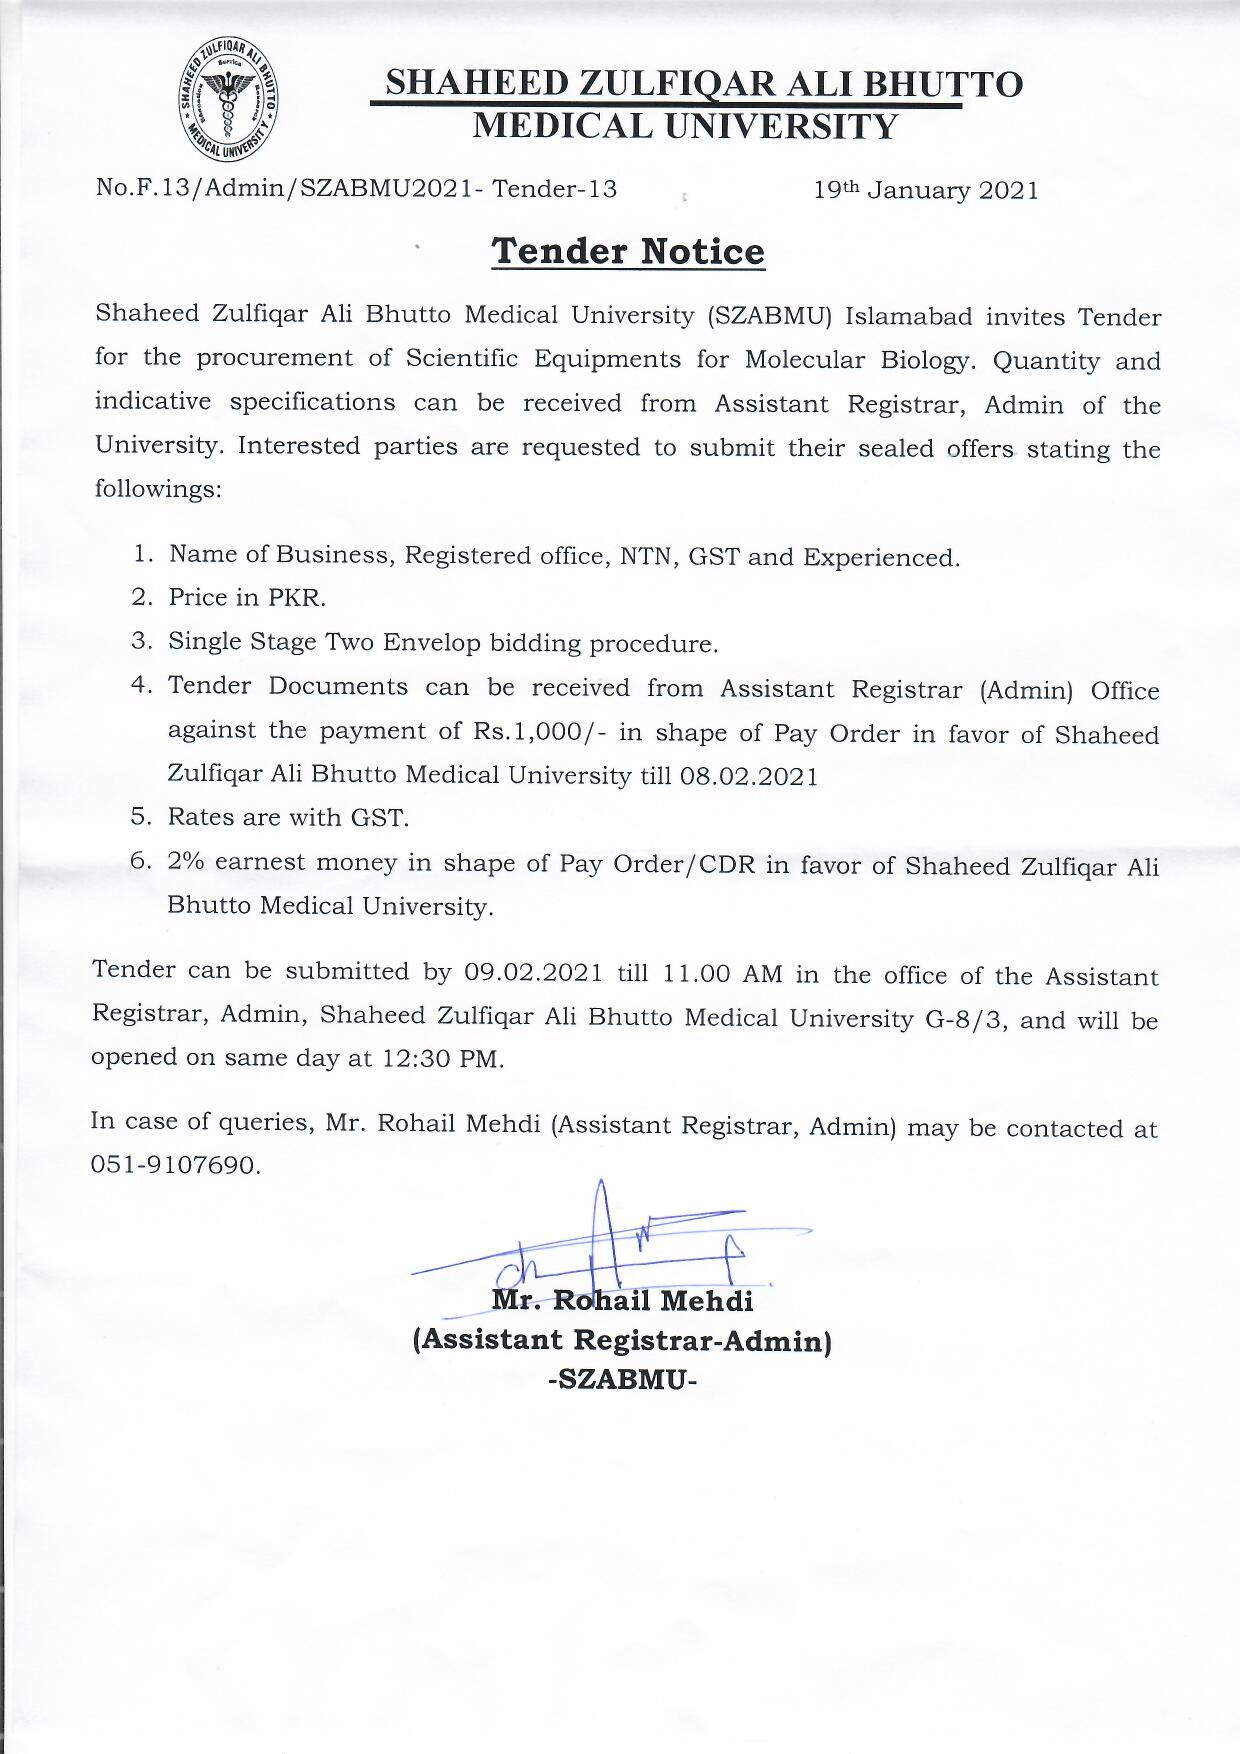 Tender Notice For Molecular Biology